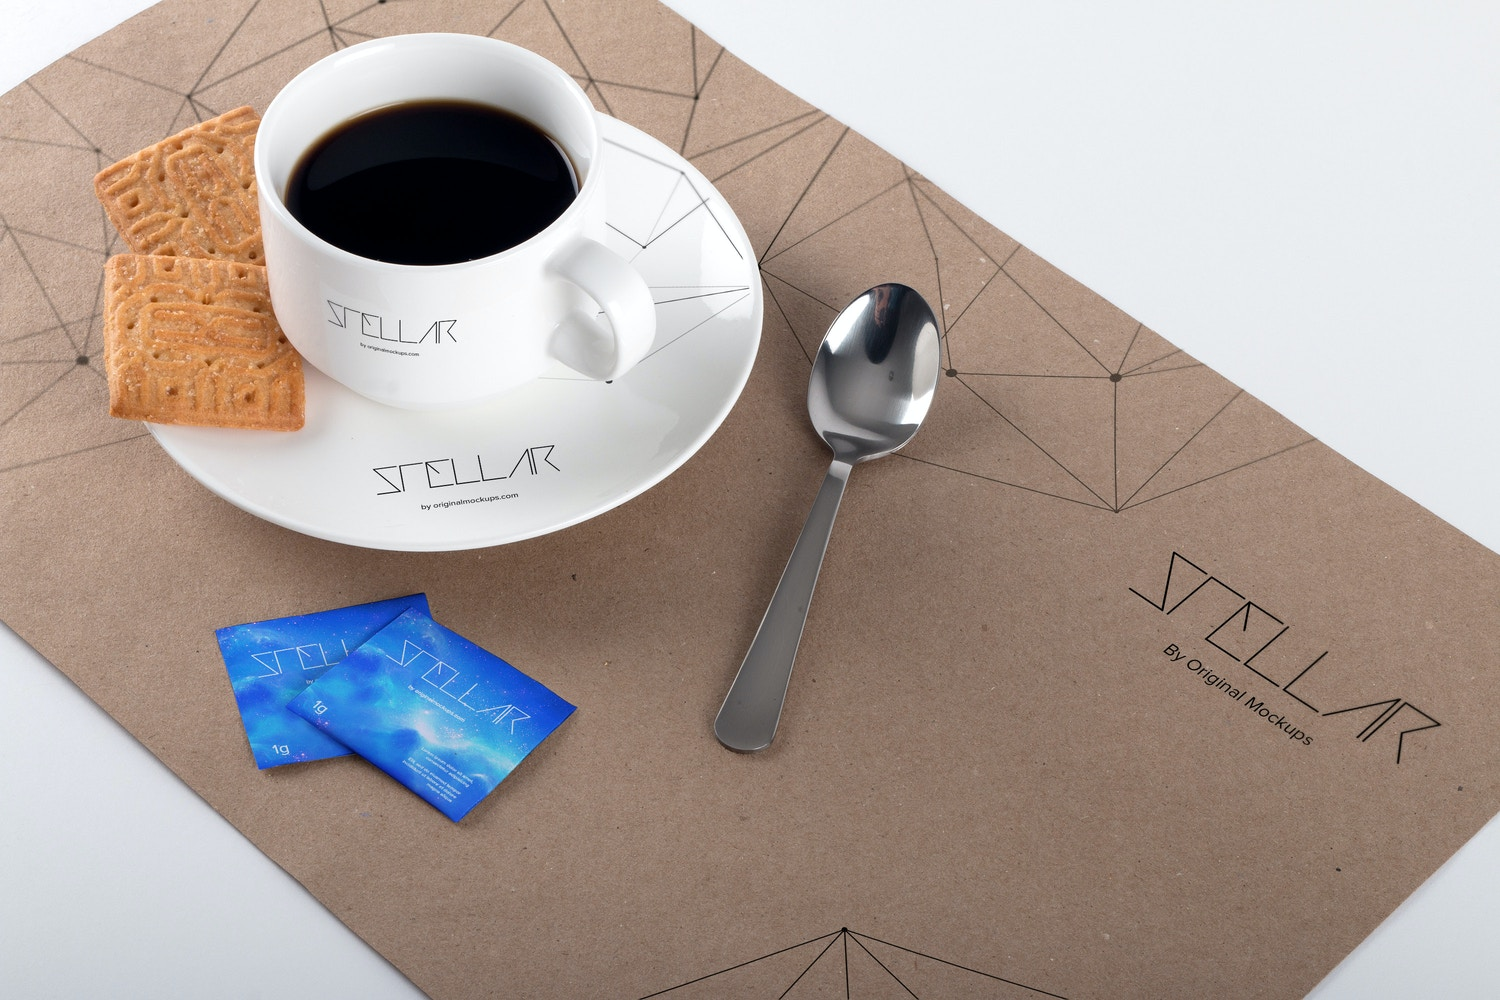 Coffee Cup and Placemat Mockup 02 por Original Mockups en Original Mockups